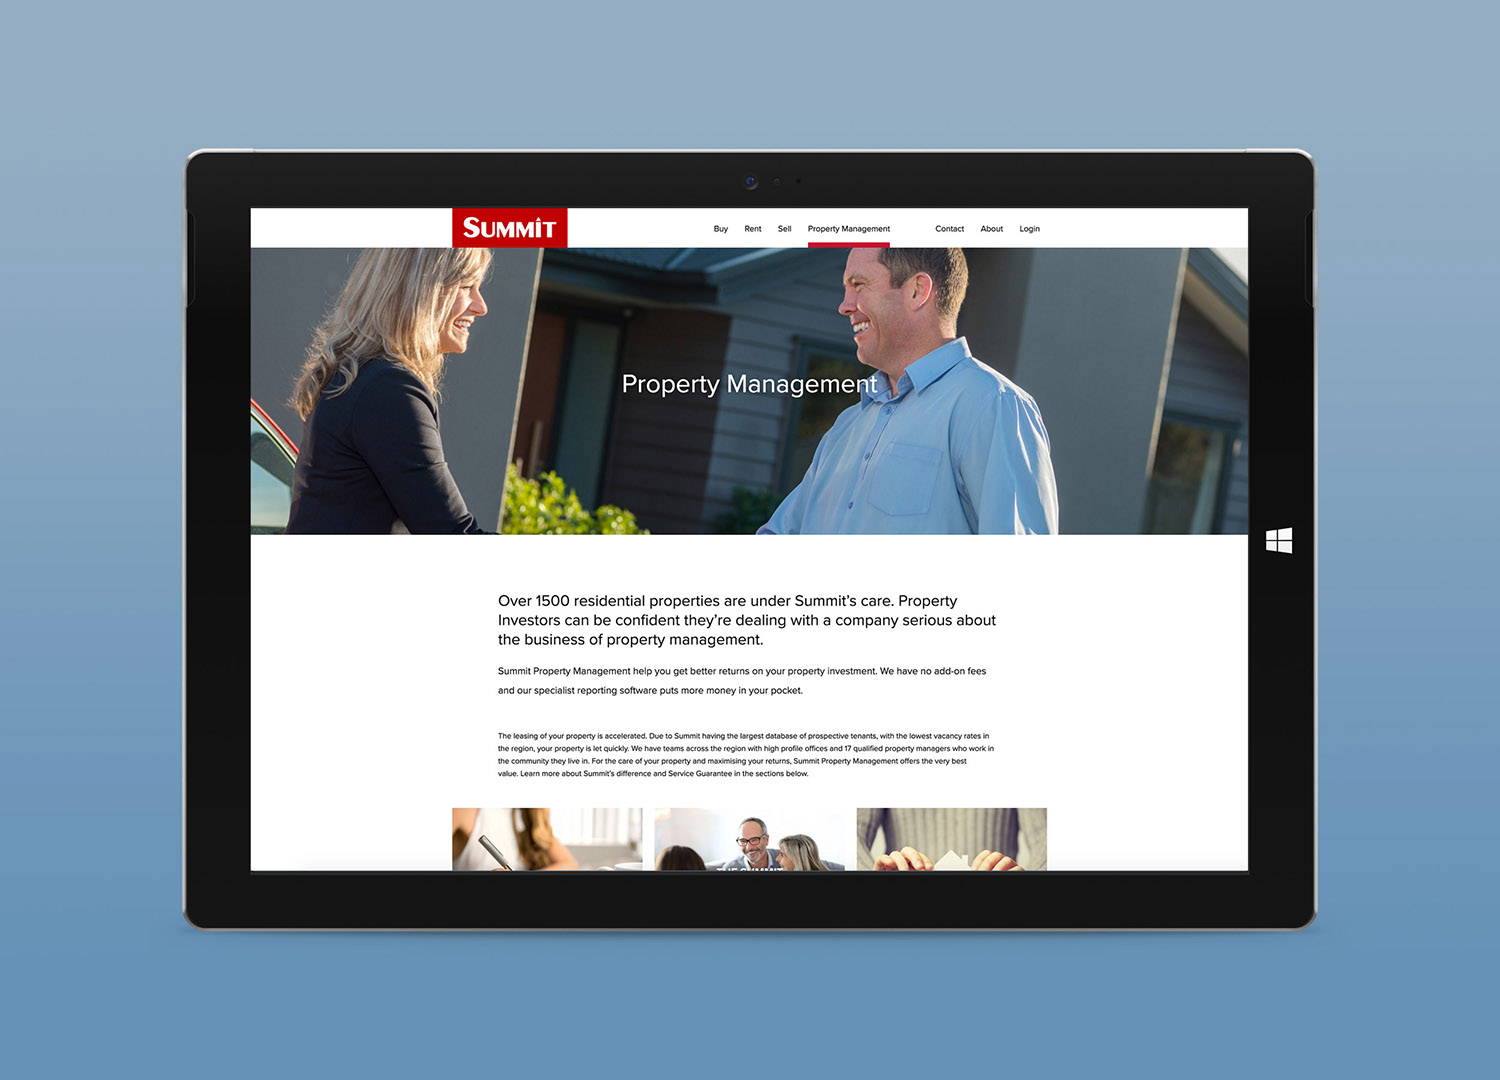 Summit Website Property Management Page Design